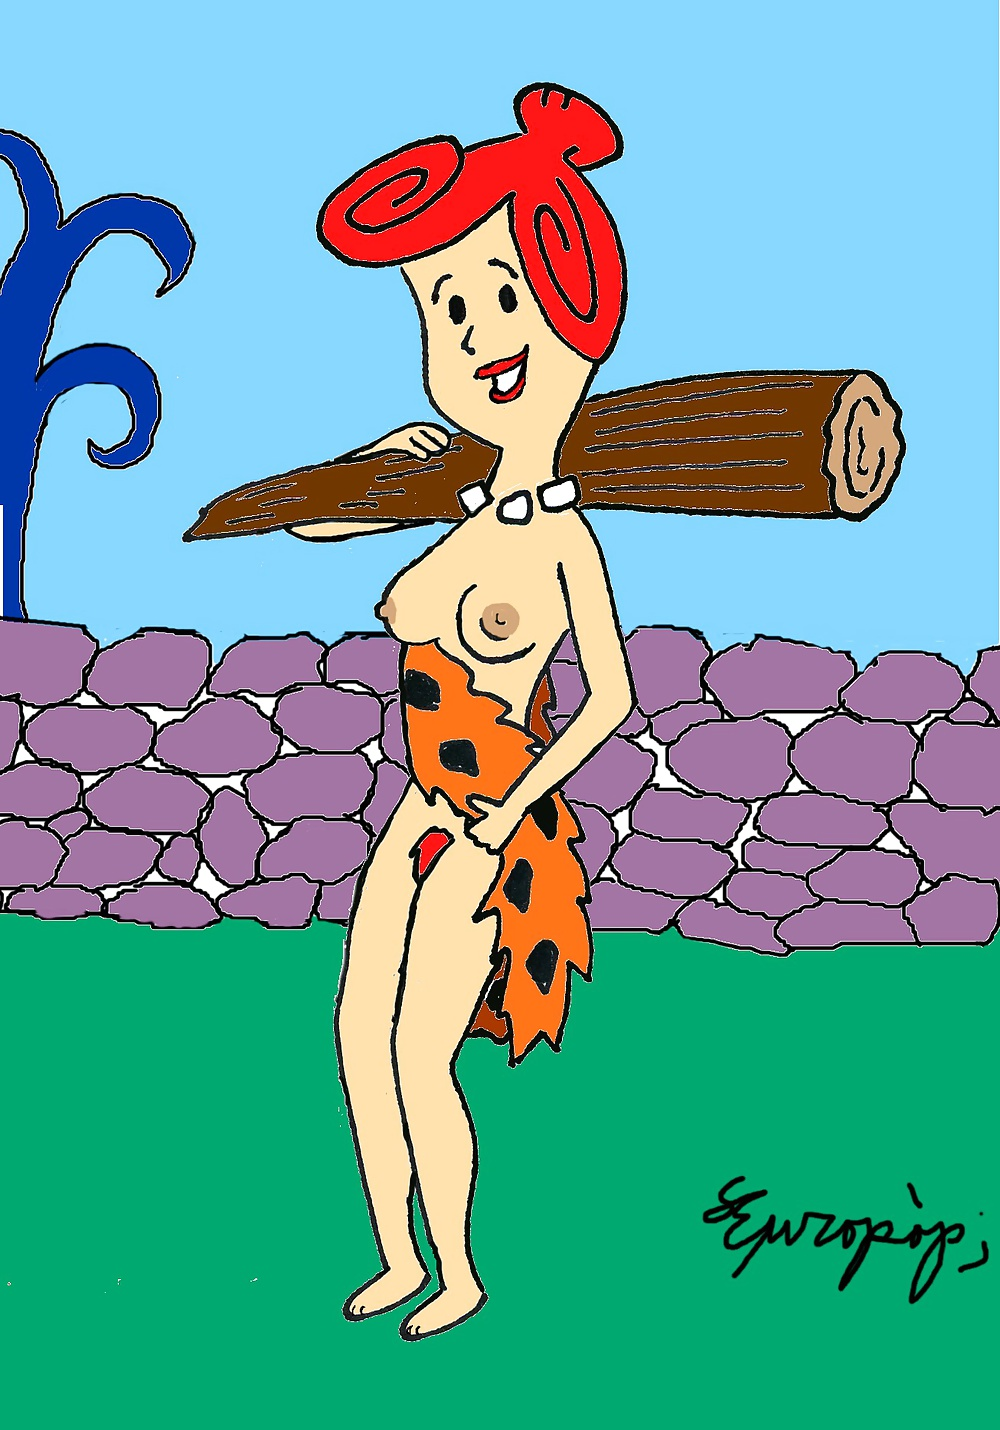 Women pussy nude images of wilma from flintstones the mud